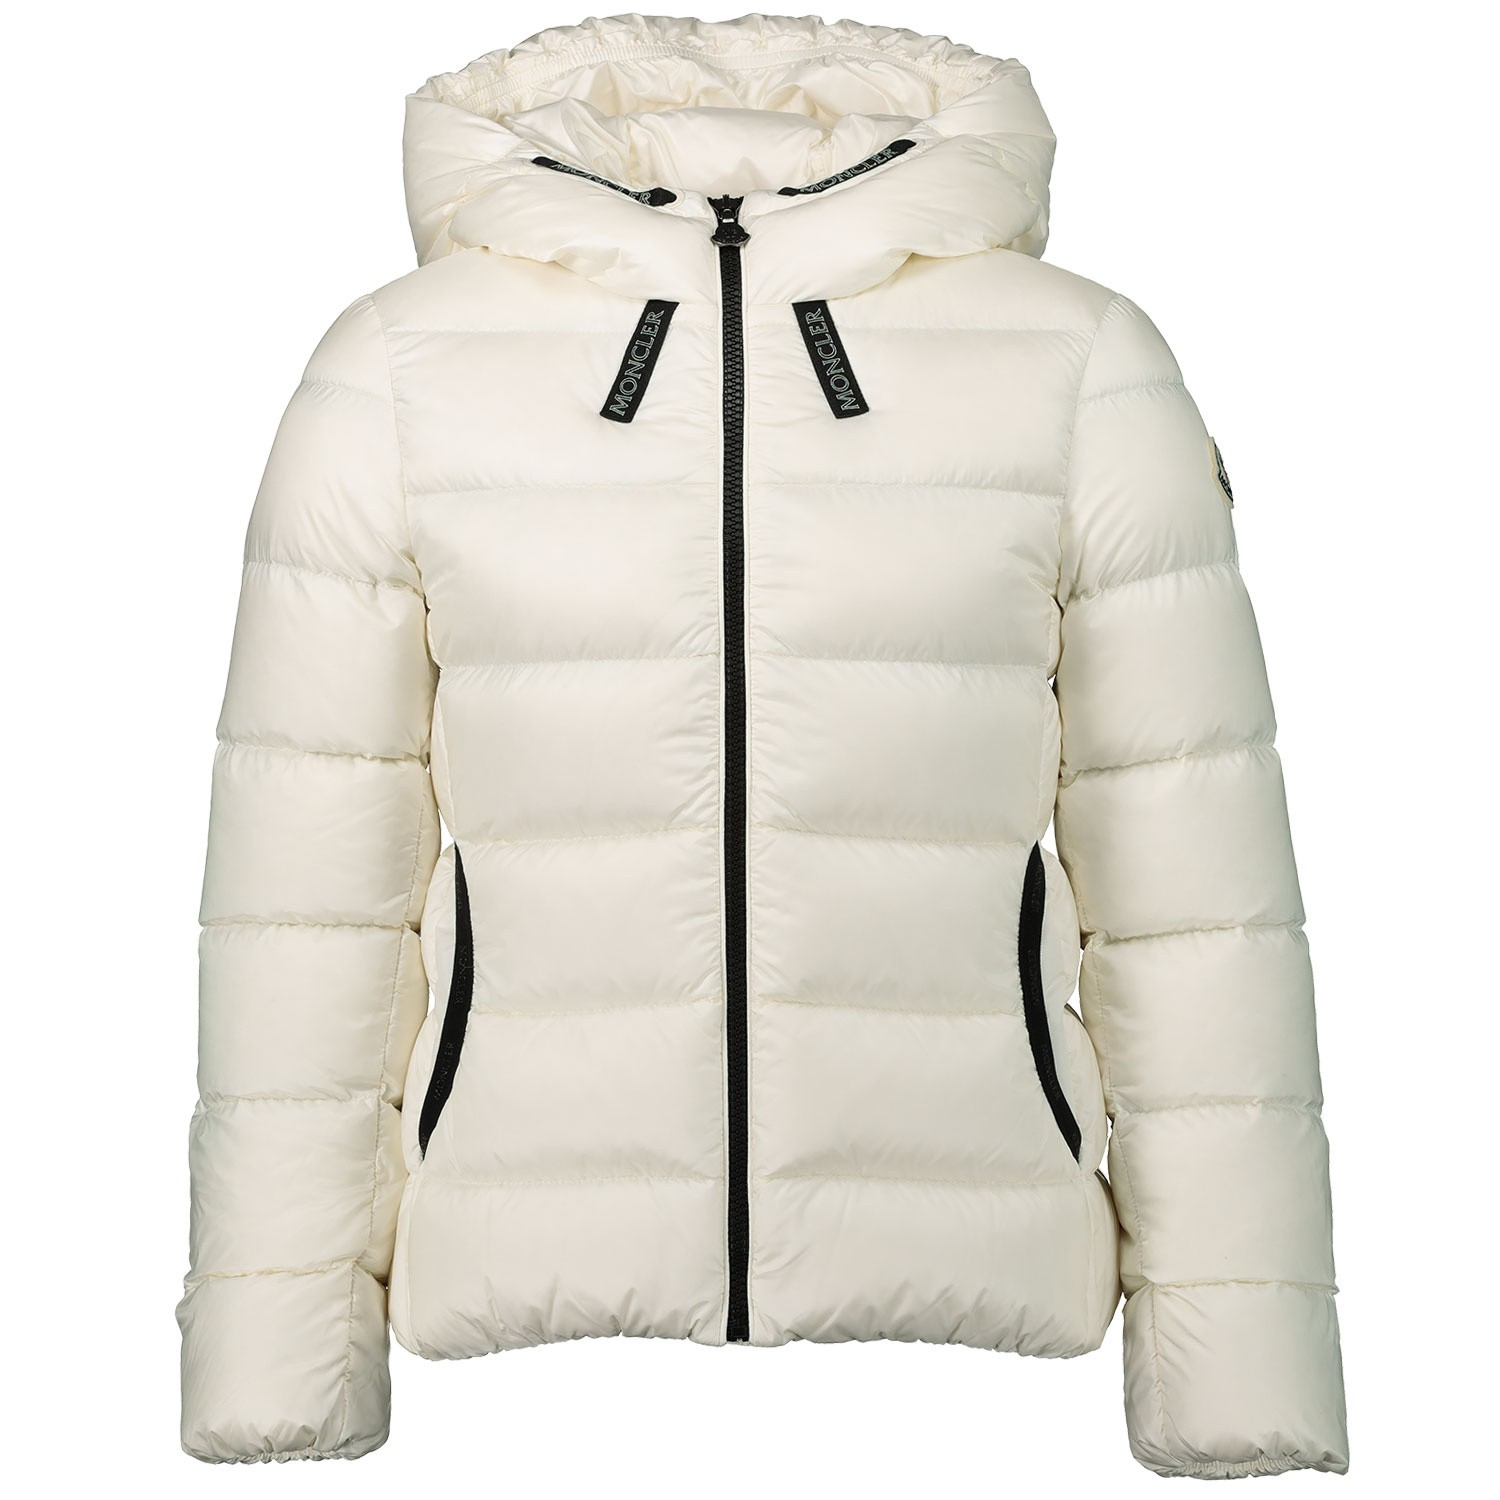 Picture of Moncler 4634305 kids jacket off white